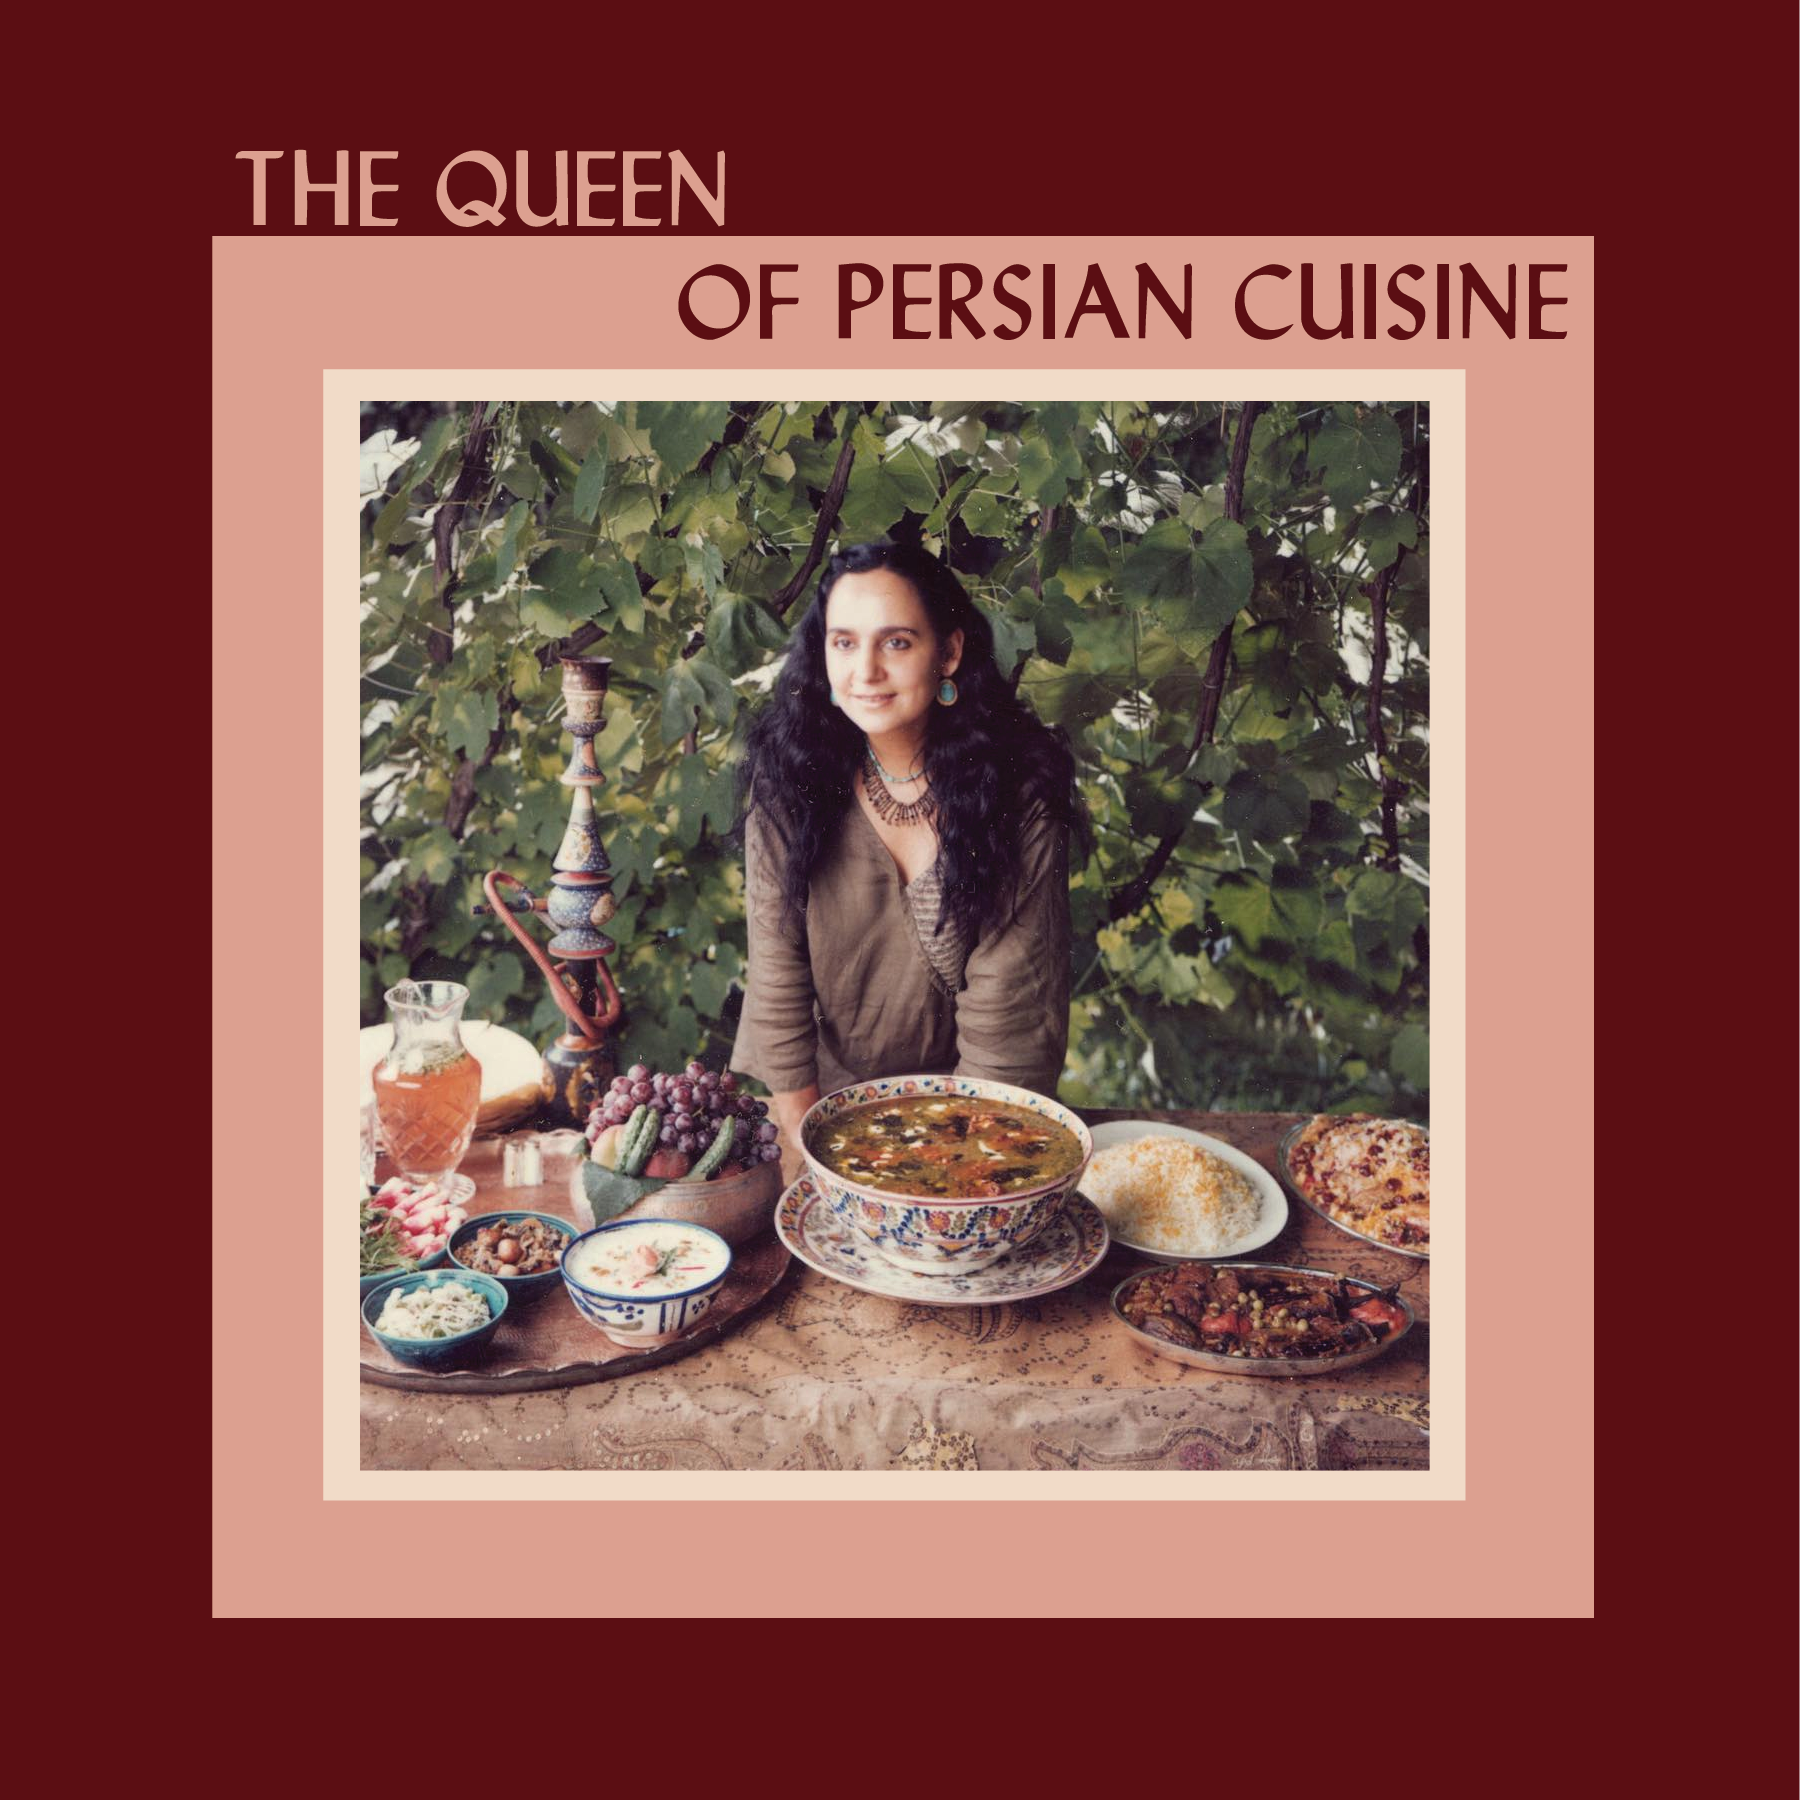 The Queen of Persian Cuisine-01.png